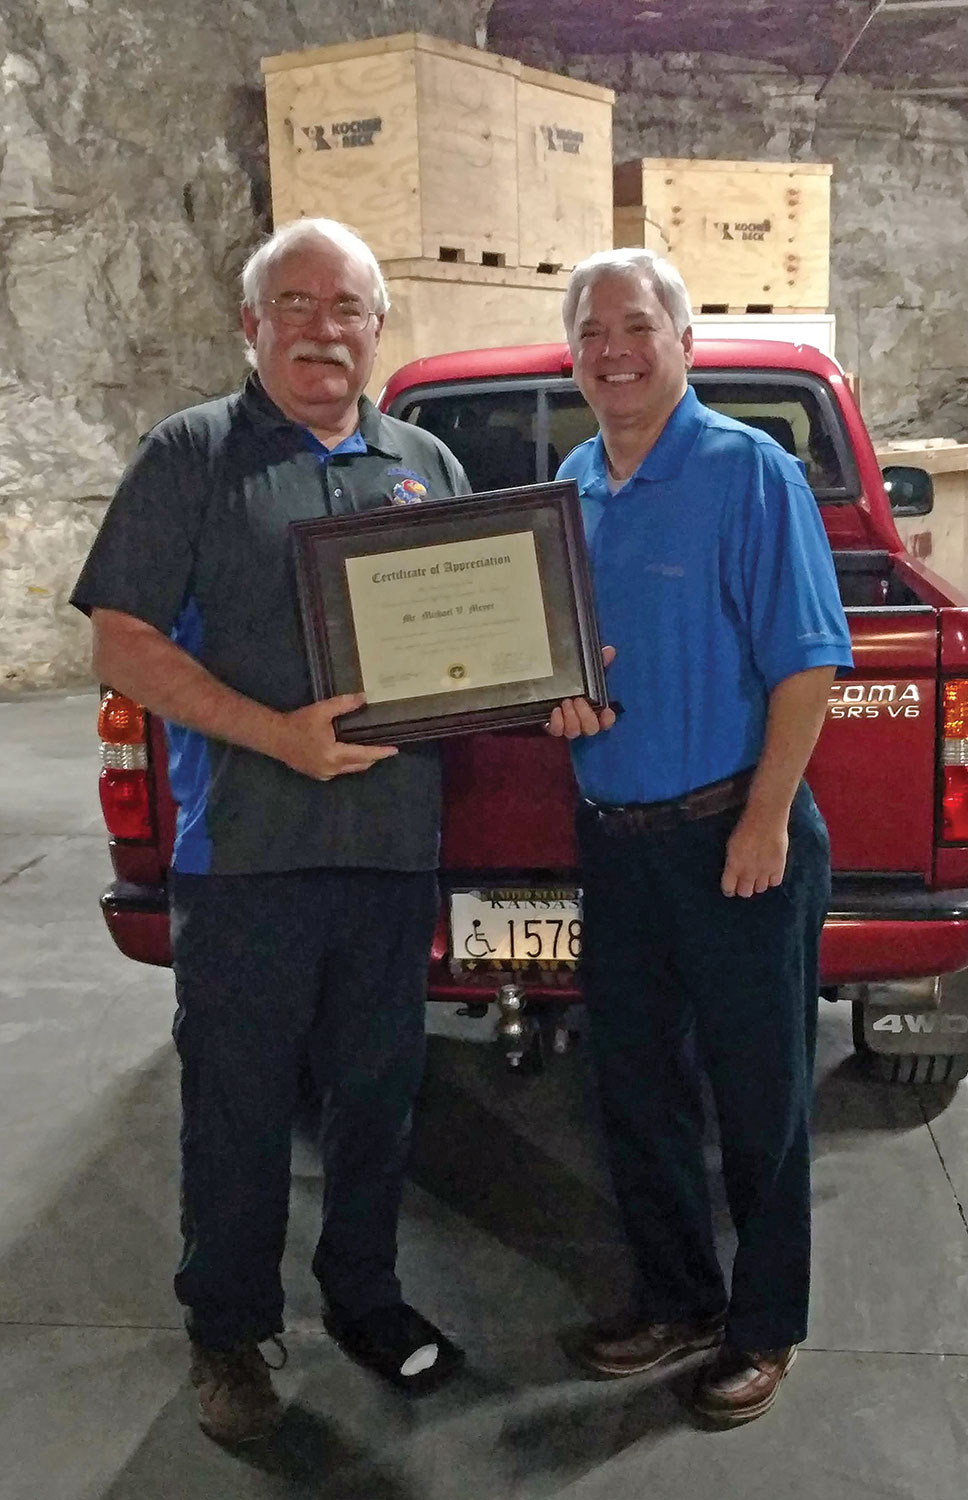 Foundation CEO Rod Cox presents Mike Meyer with a certificate of appreciation for his service as a Foundation trustee from August 2011 to August 2020.